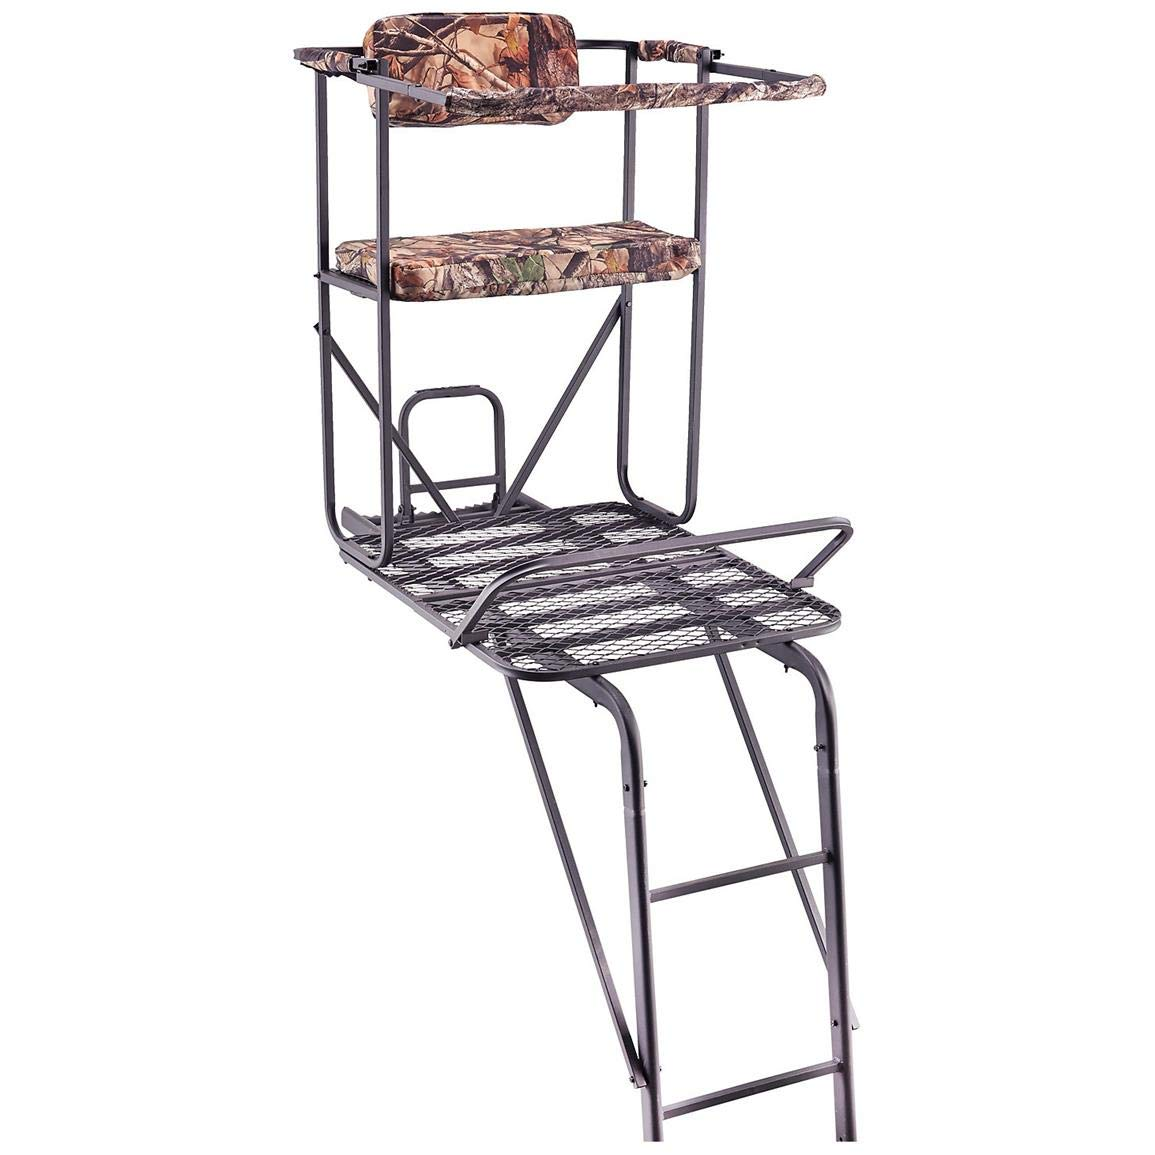 Guide Gear Oversized 18' 1.5-Man Ladder Tree Stand